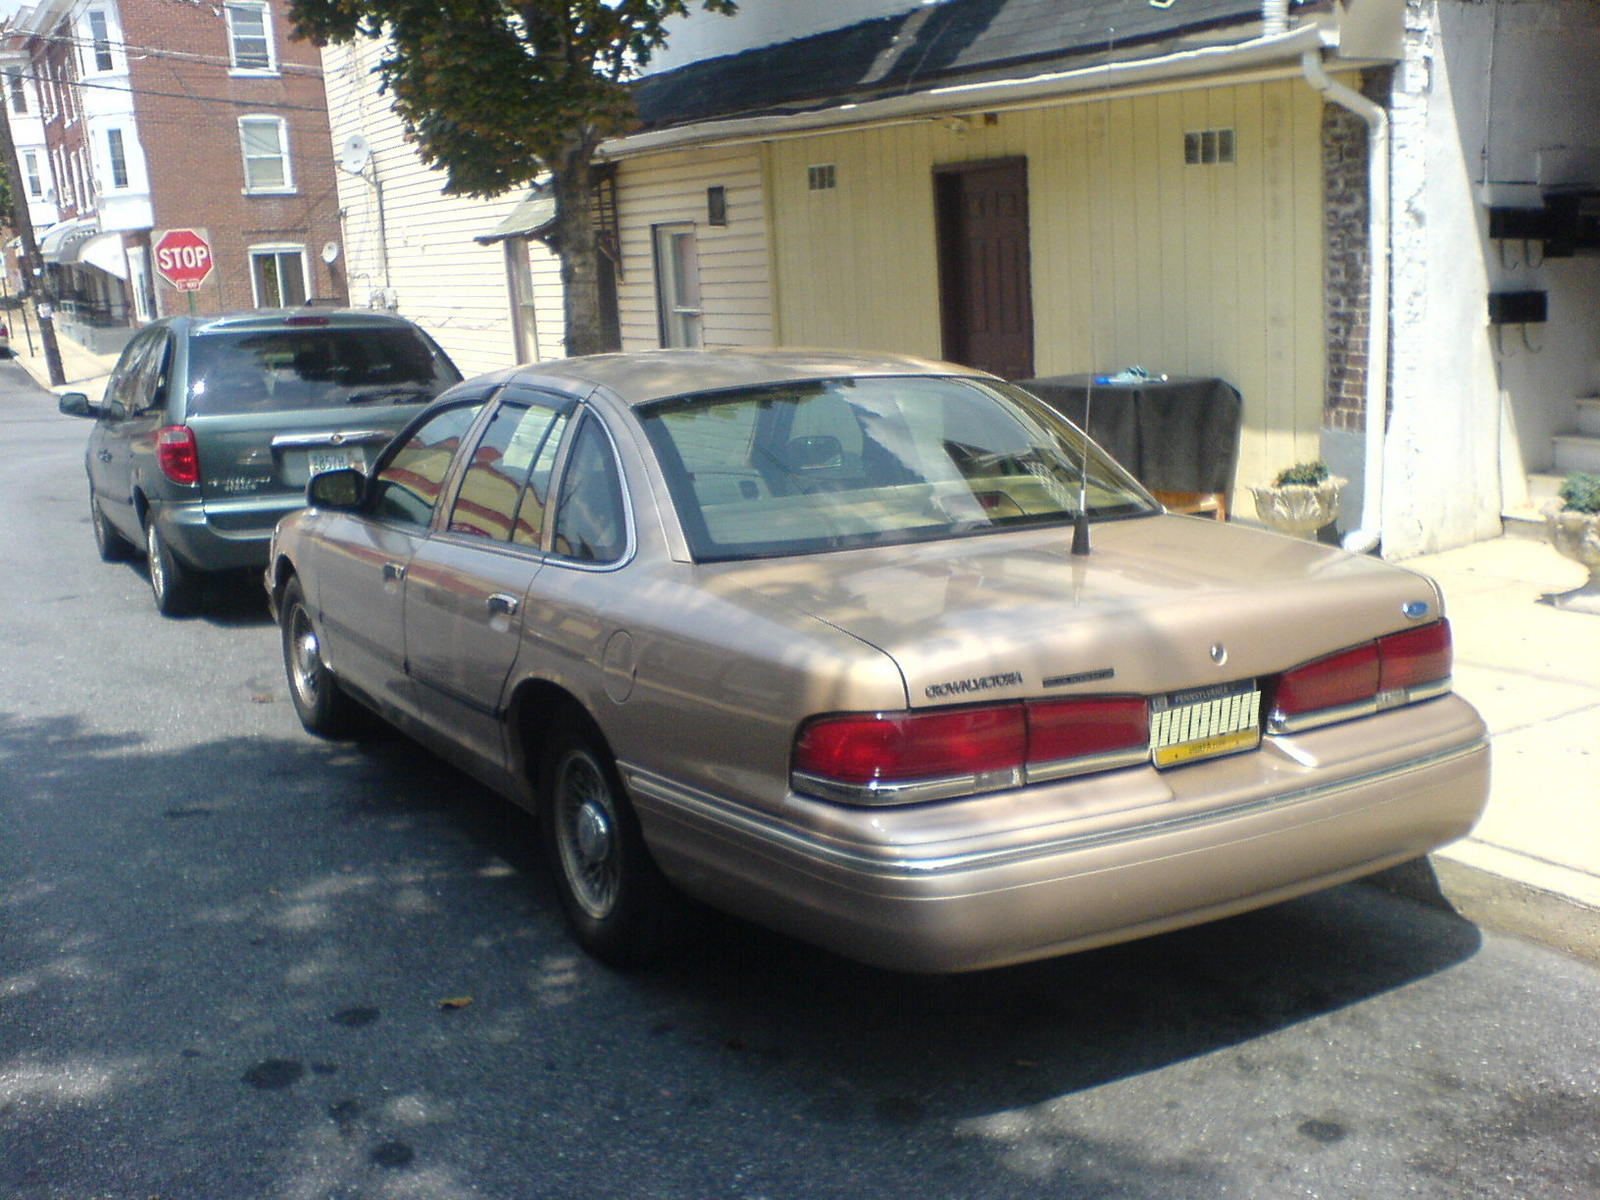 1995 Ford Crown Victoria 4 Dr STD Sedan picture, exterior